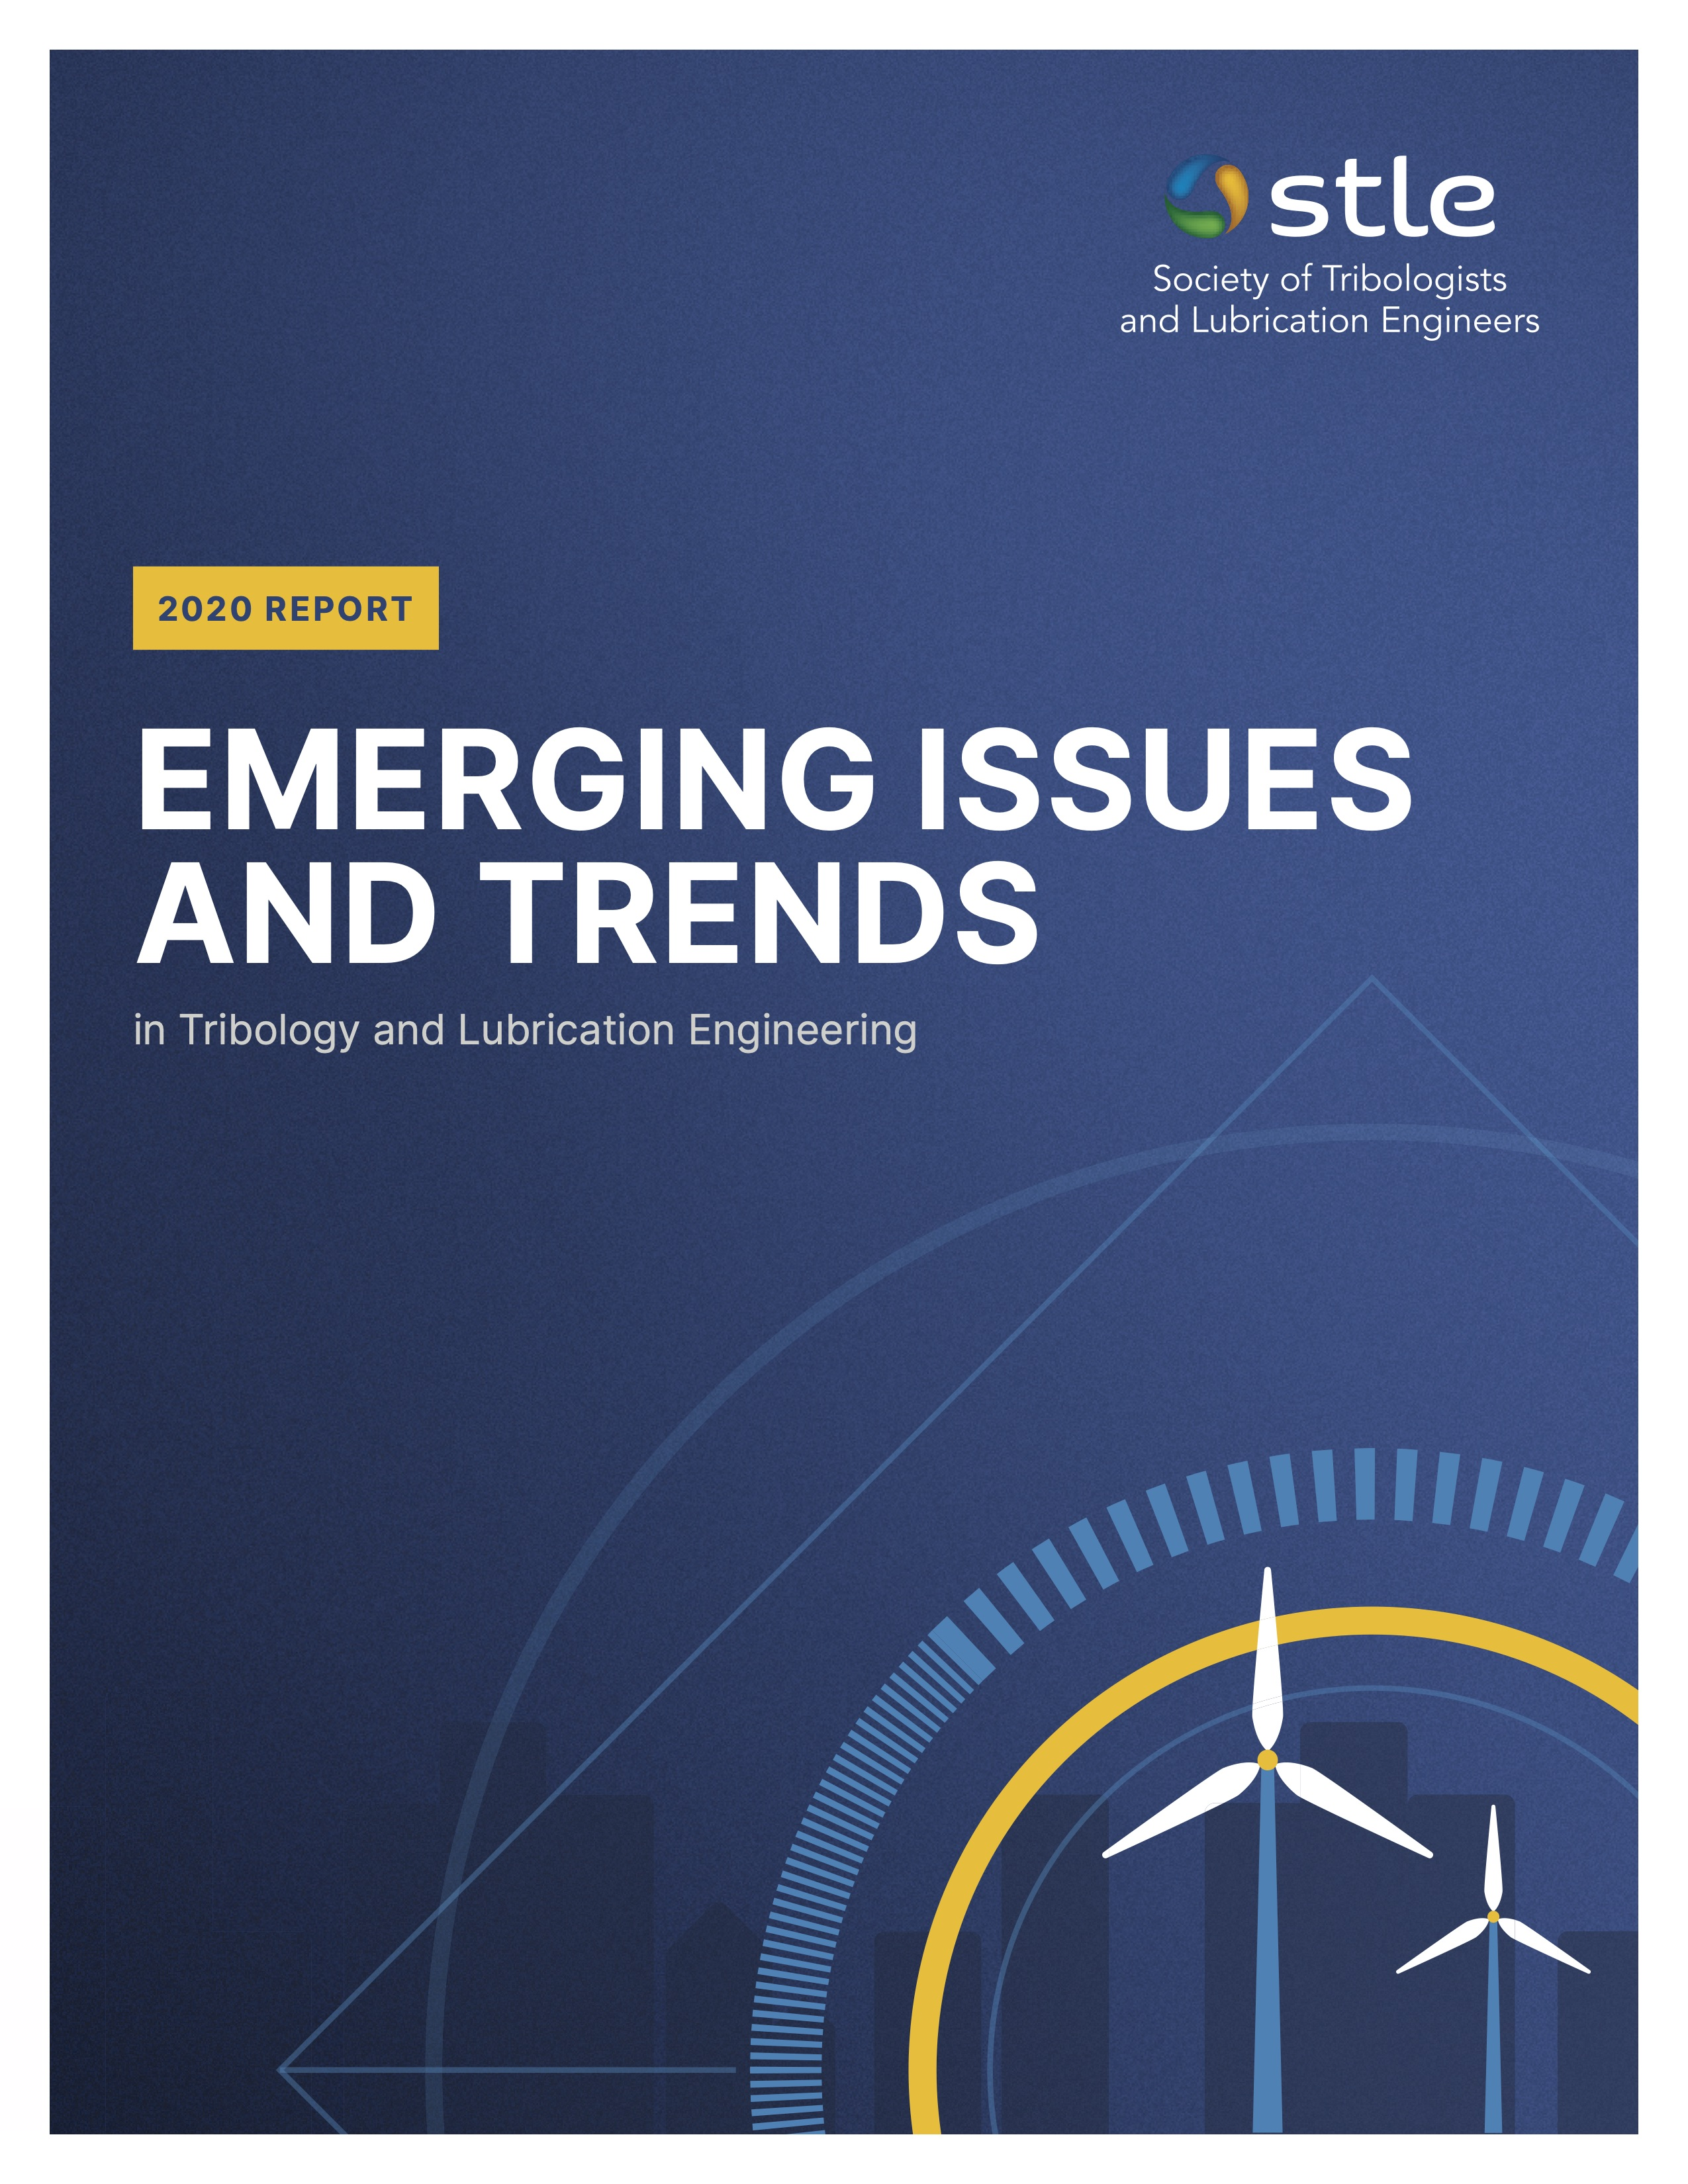 2020 Report on Emerging Issues and Trends - Digital